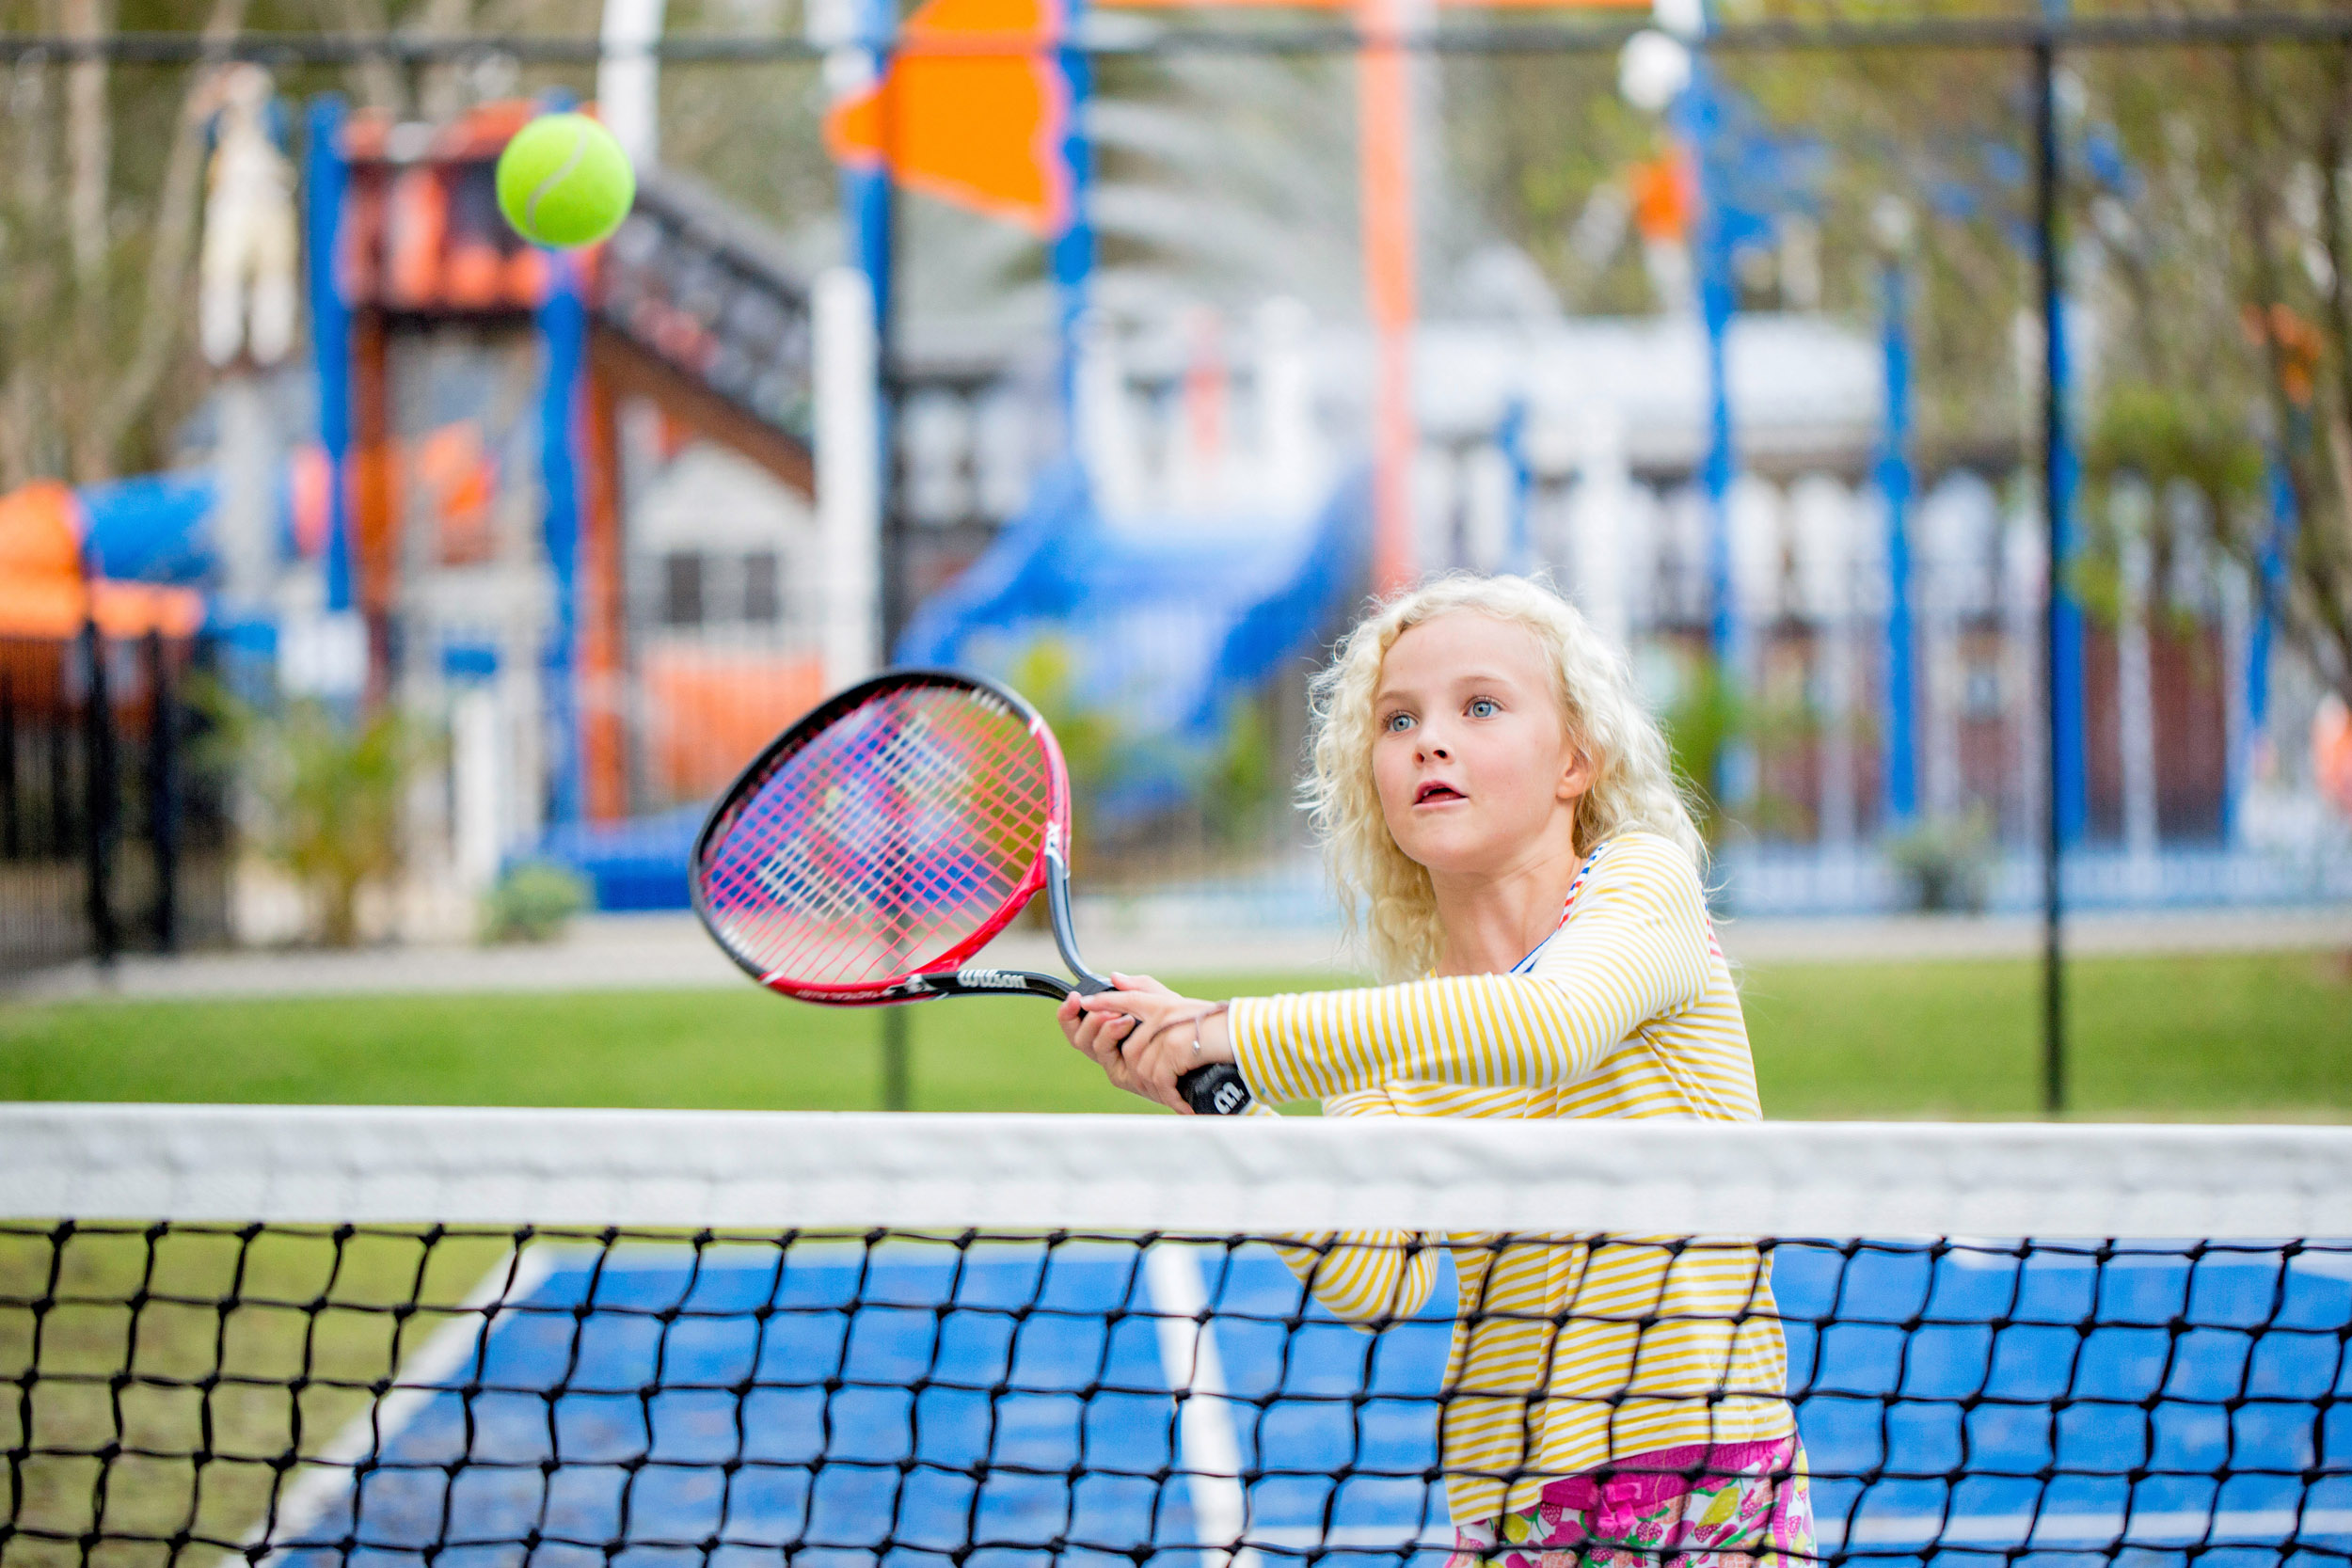 holiday-park-photography-tennis.jpg